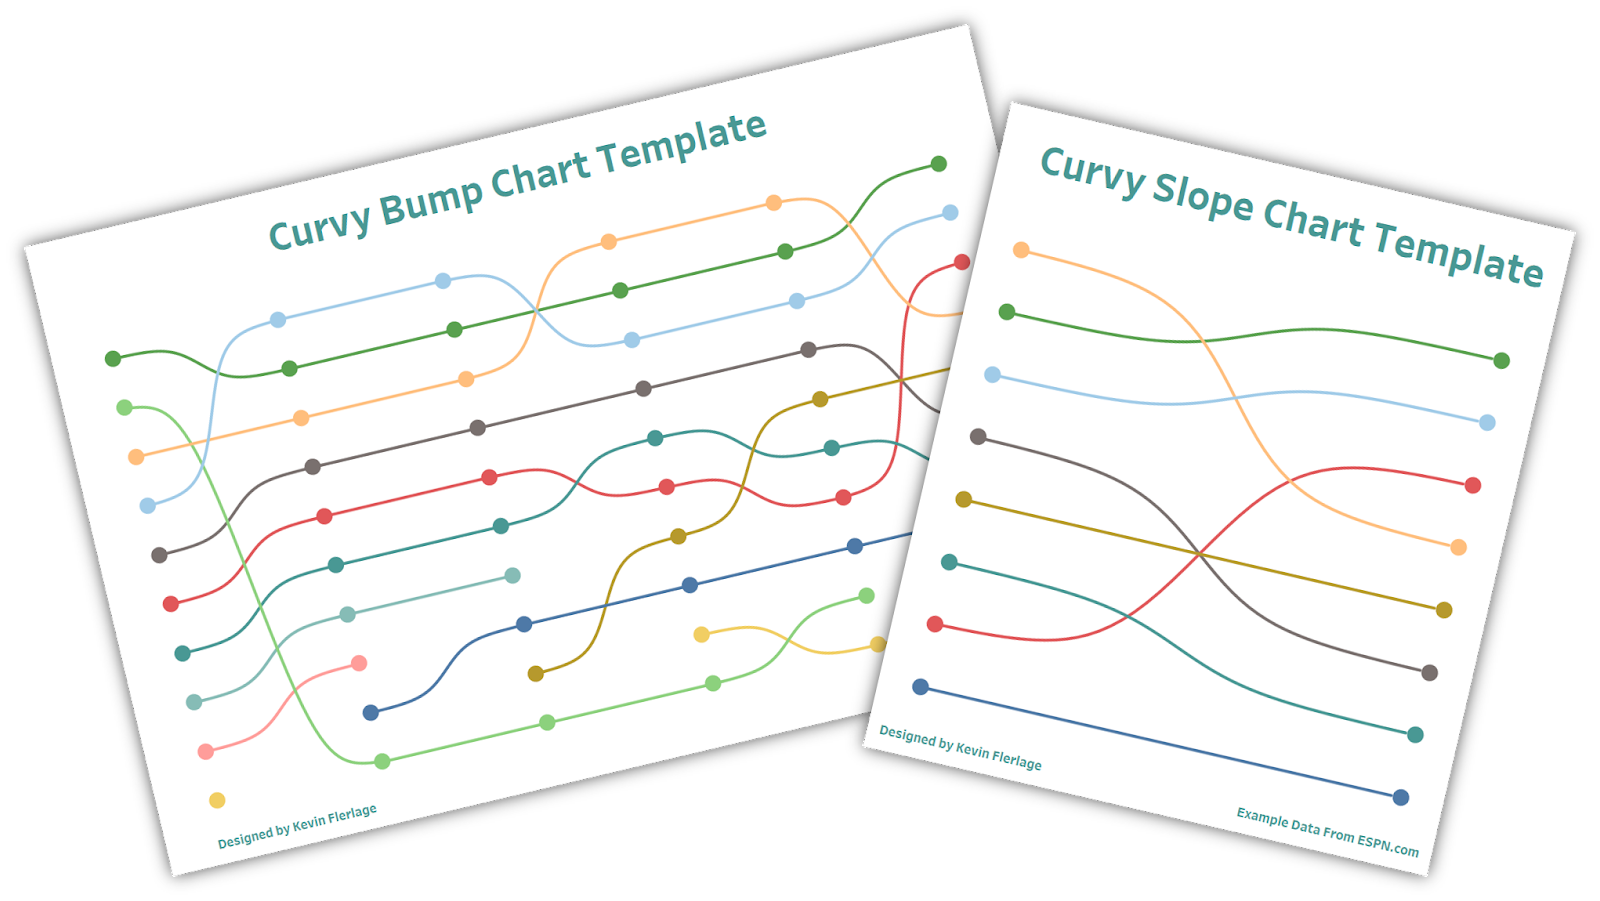 Curvy Bump Chart & Slope Chart Template - Kevin Flerlage